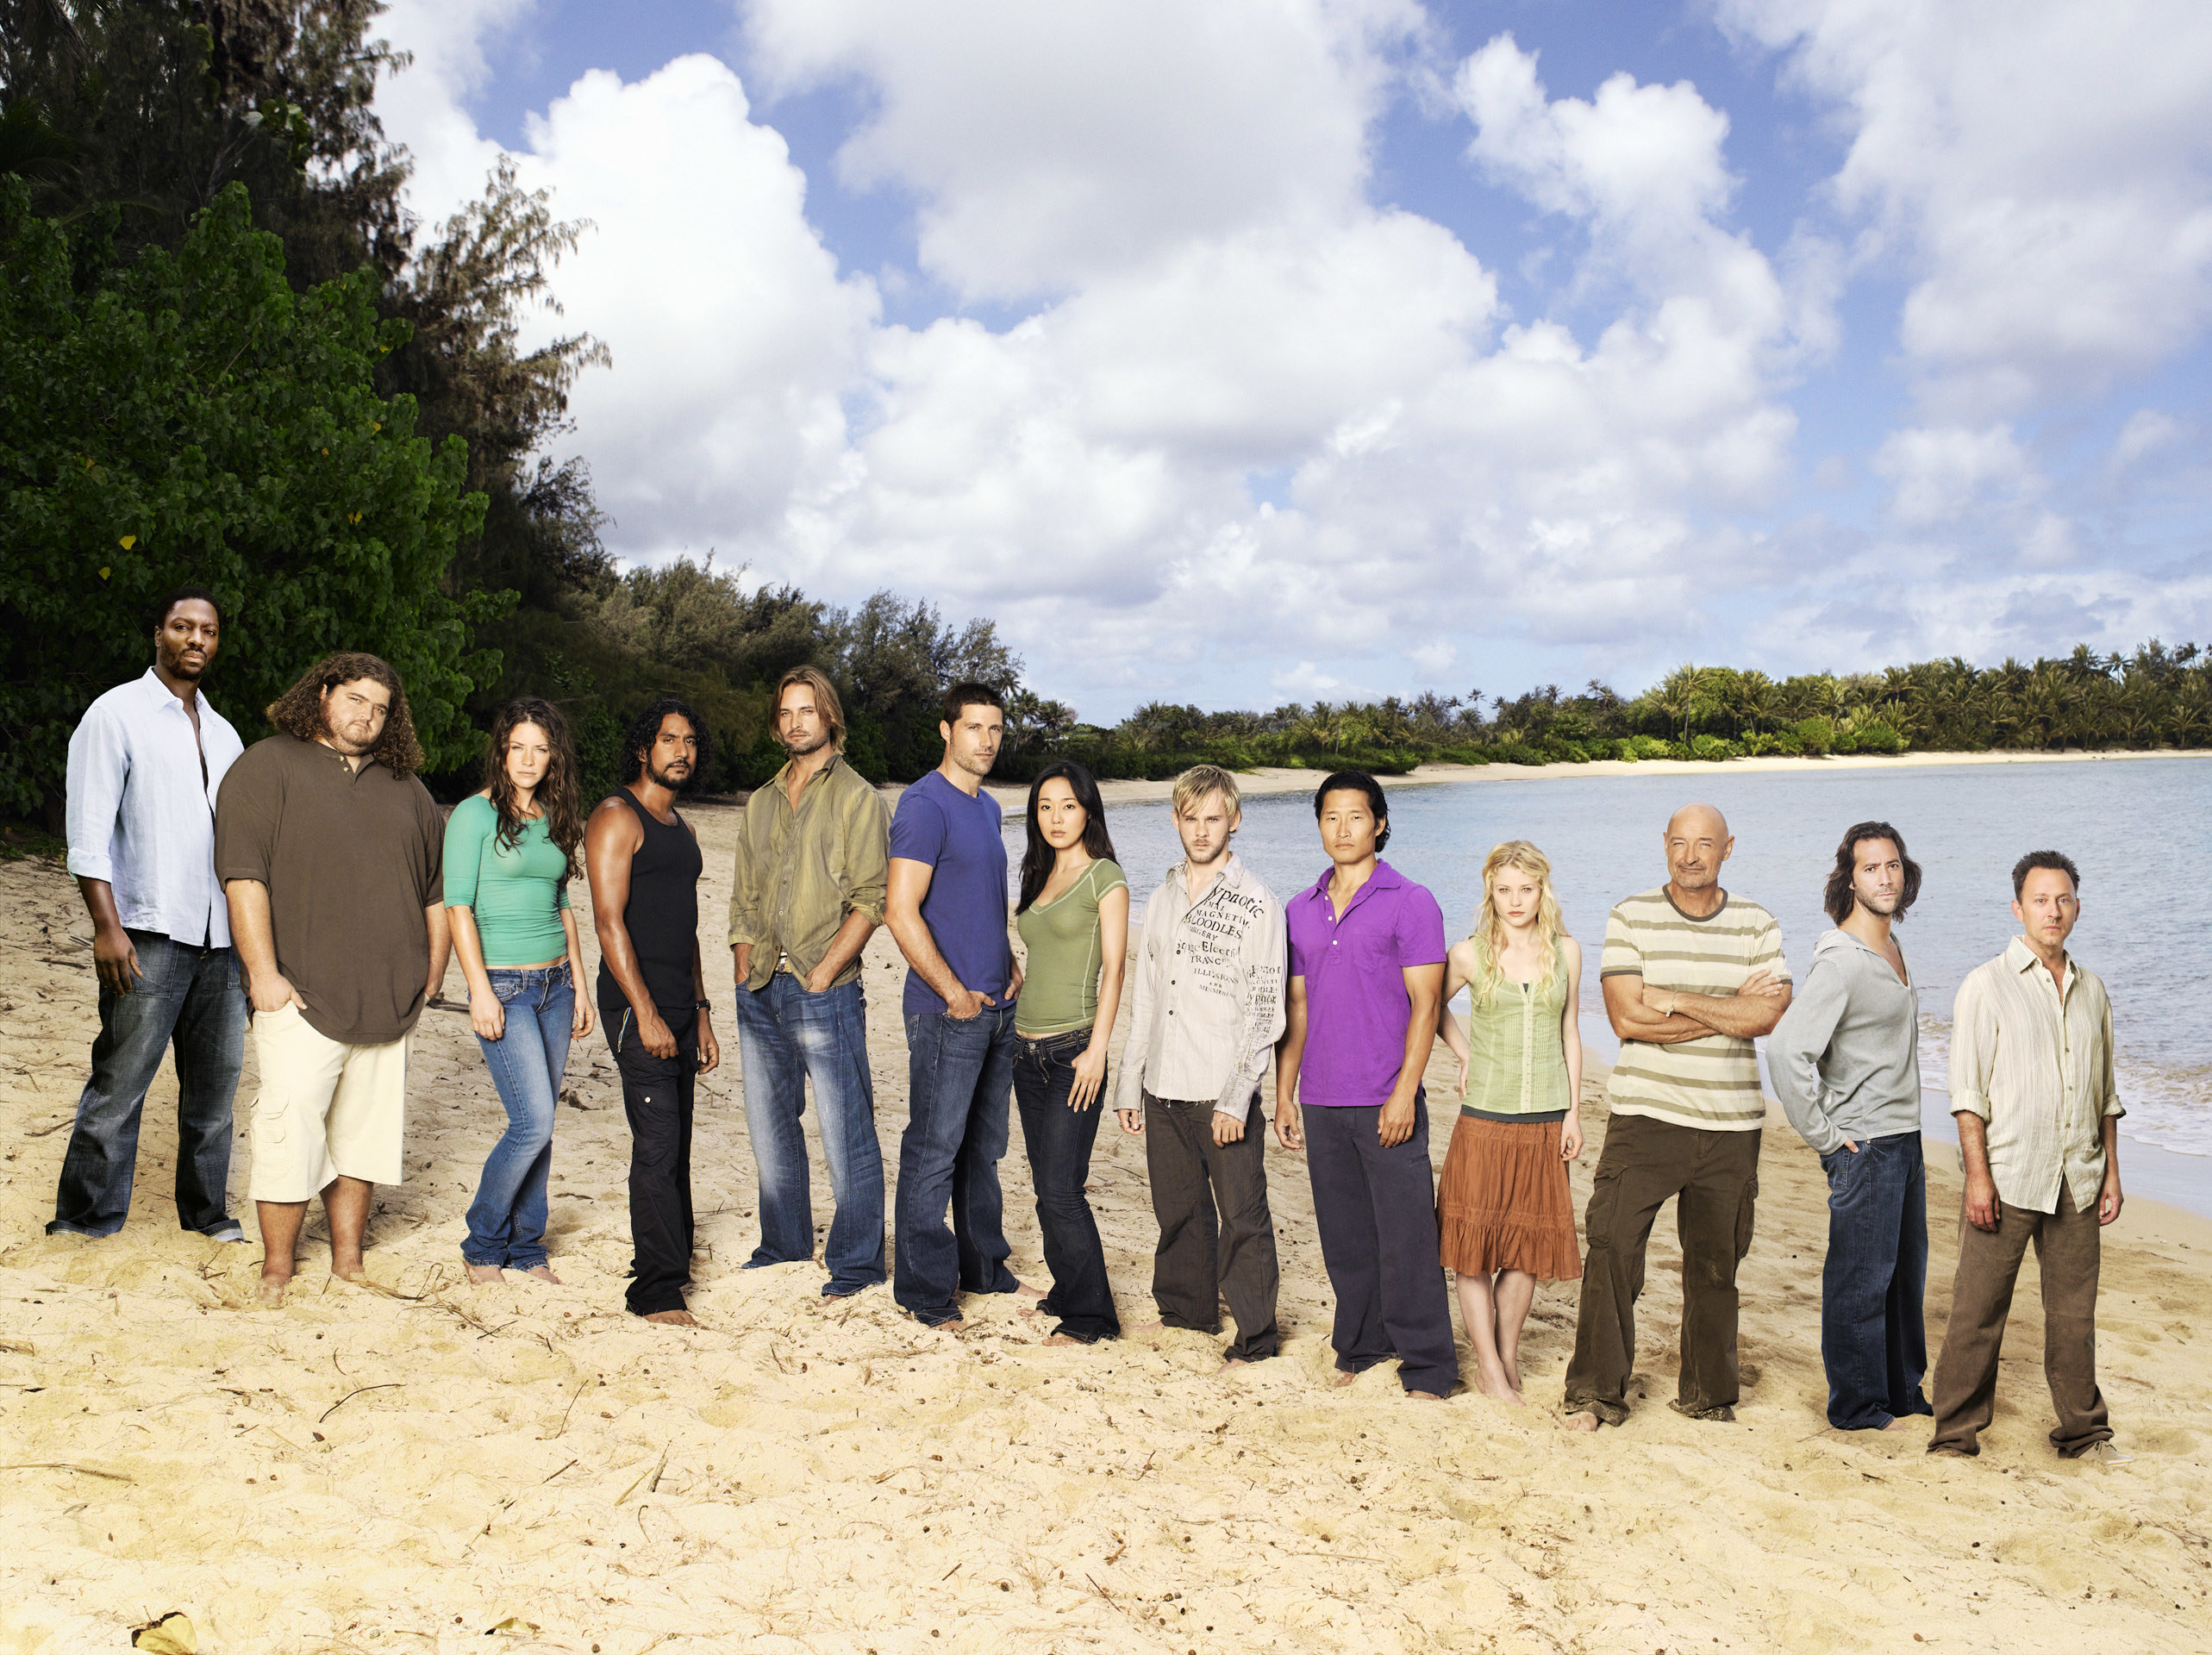 """A publicity photo of the cast of """"Lost"""" standing on a beach"""